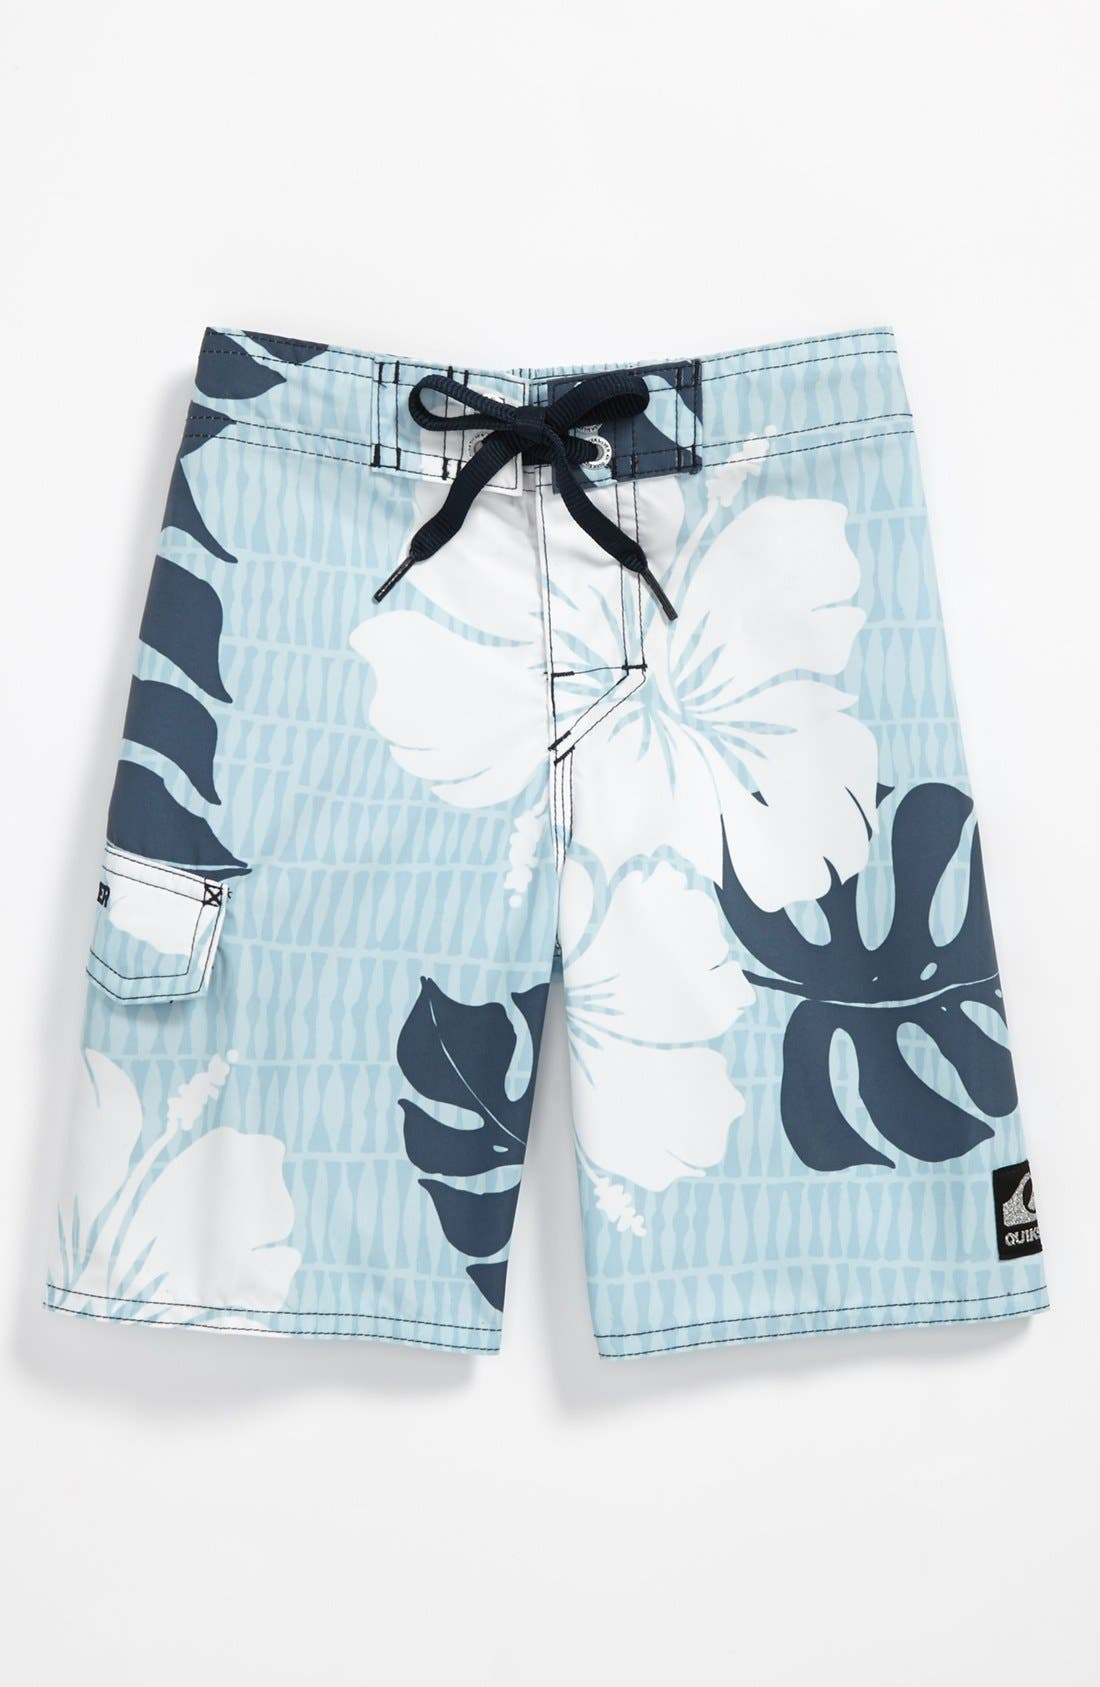 Alternate Image 1 Selected - Quiksilver 'Betta' Board Shorts (Toddler)